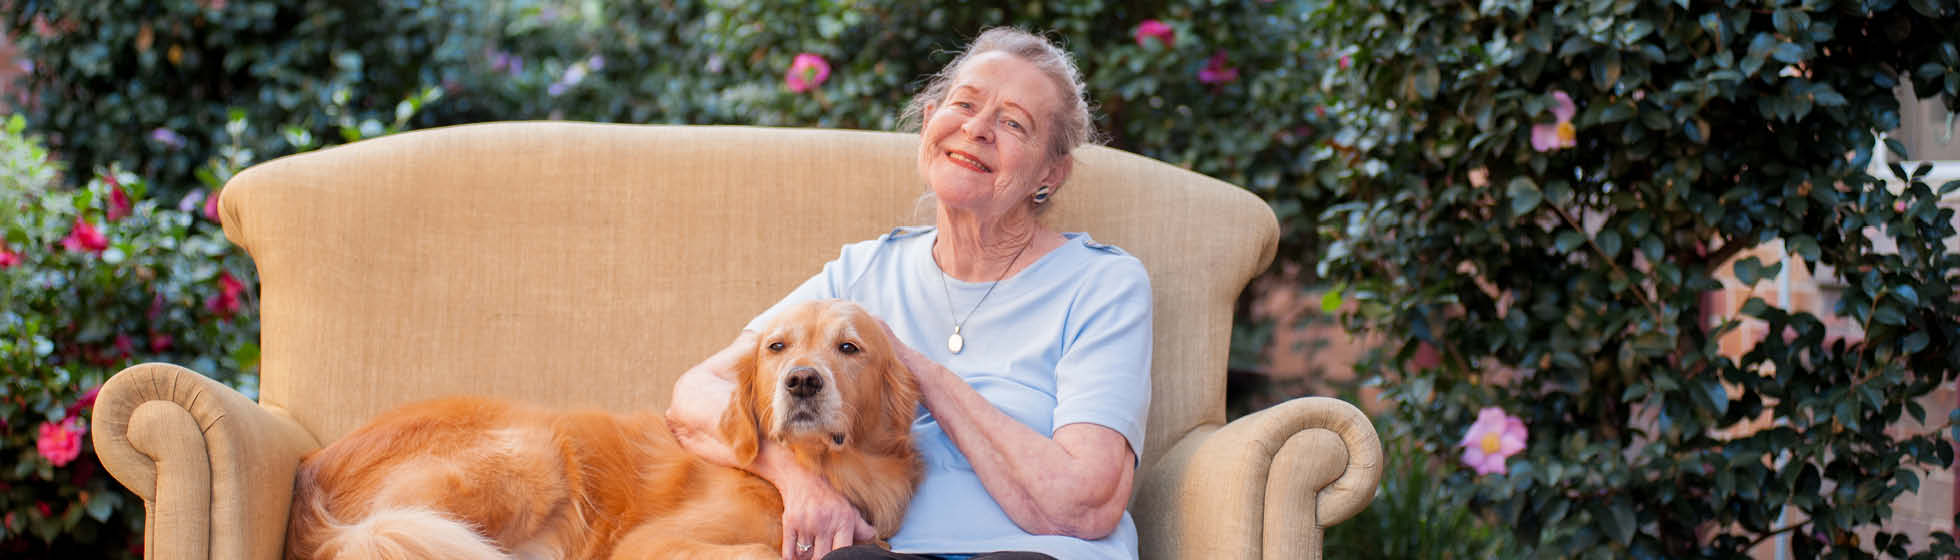 resident enjoying pets as therapy dog